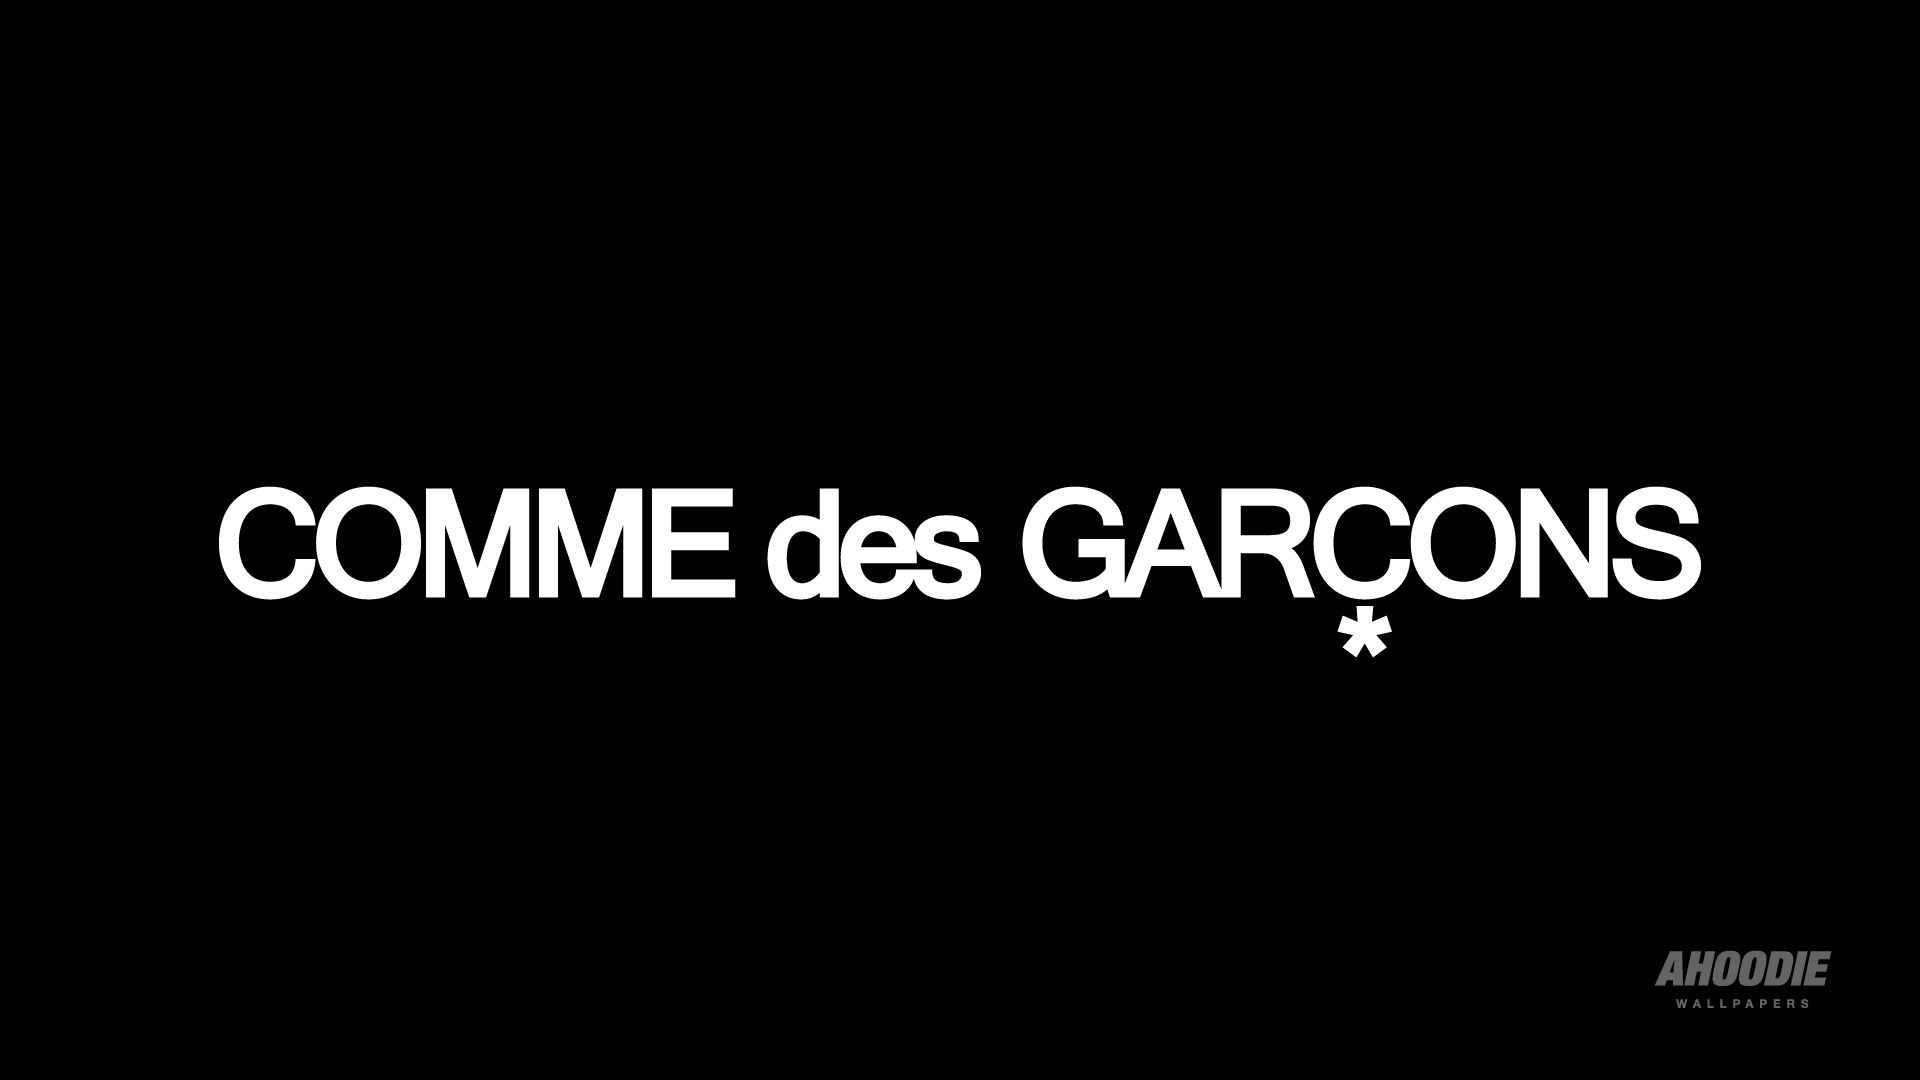 commes des garcons brand You will be able to resist the charm of the comme des garcons brand the store vestiaire collective presents the comme des garcons brand, designer of original and elegant merchandise to have a original look.